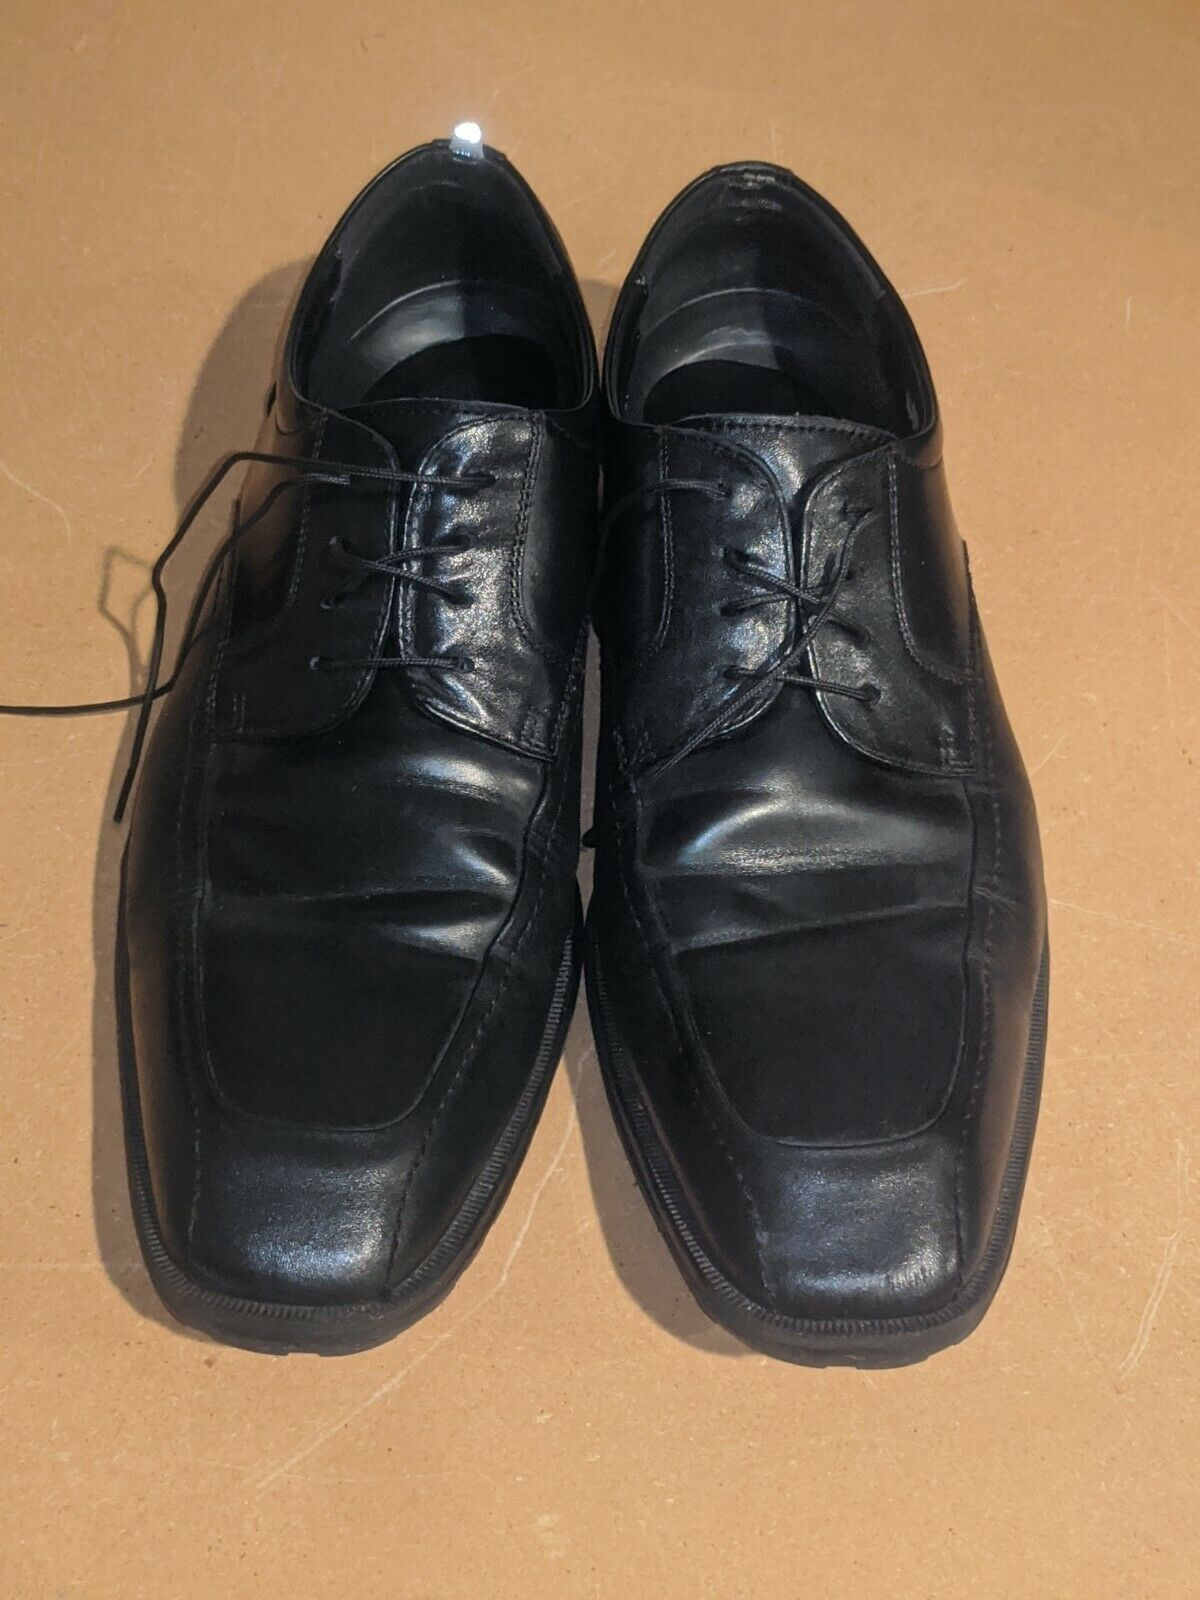 Kenneth Cole Reaction Black Leather Oxford Dress Shoes Mens 12 M